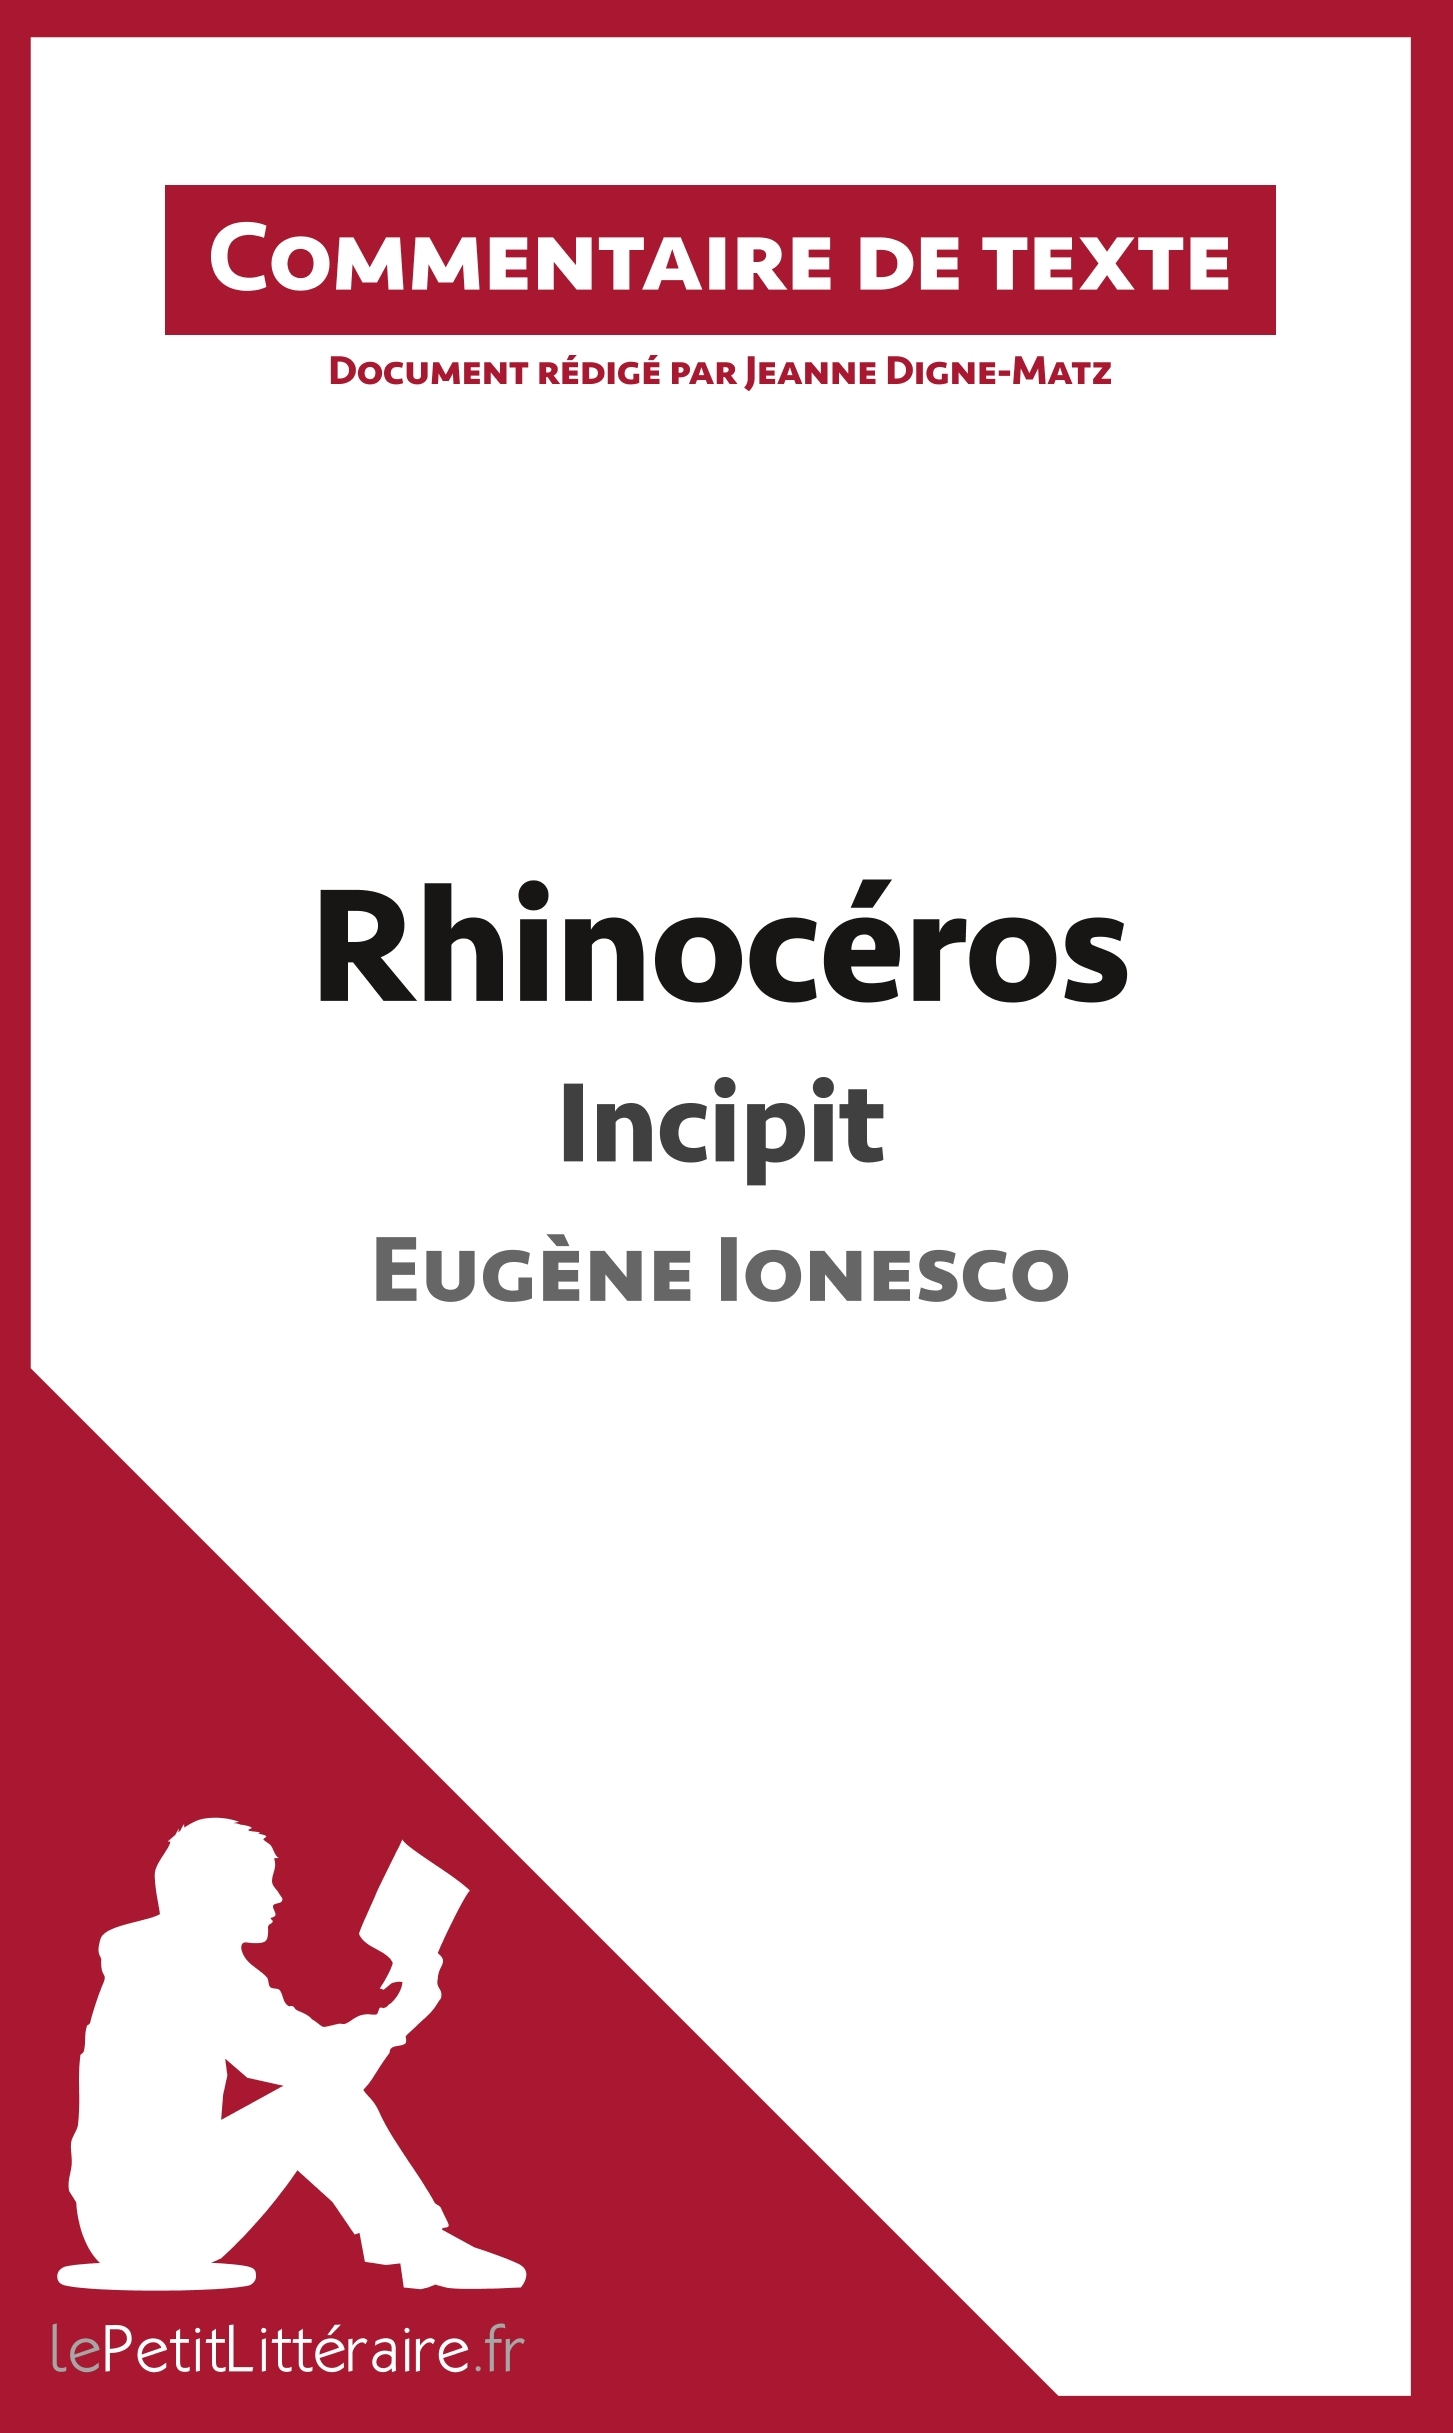 COMMENTAIRE COMPOSE RHINOCEROS DE IONESCO INCIPIT